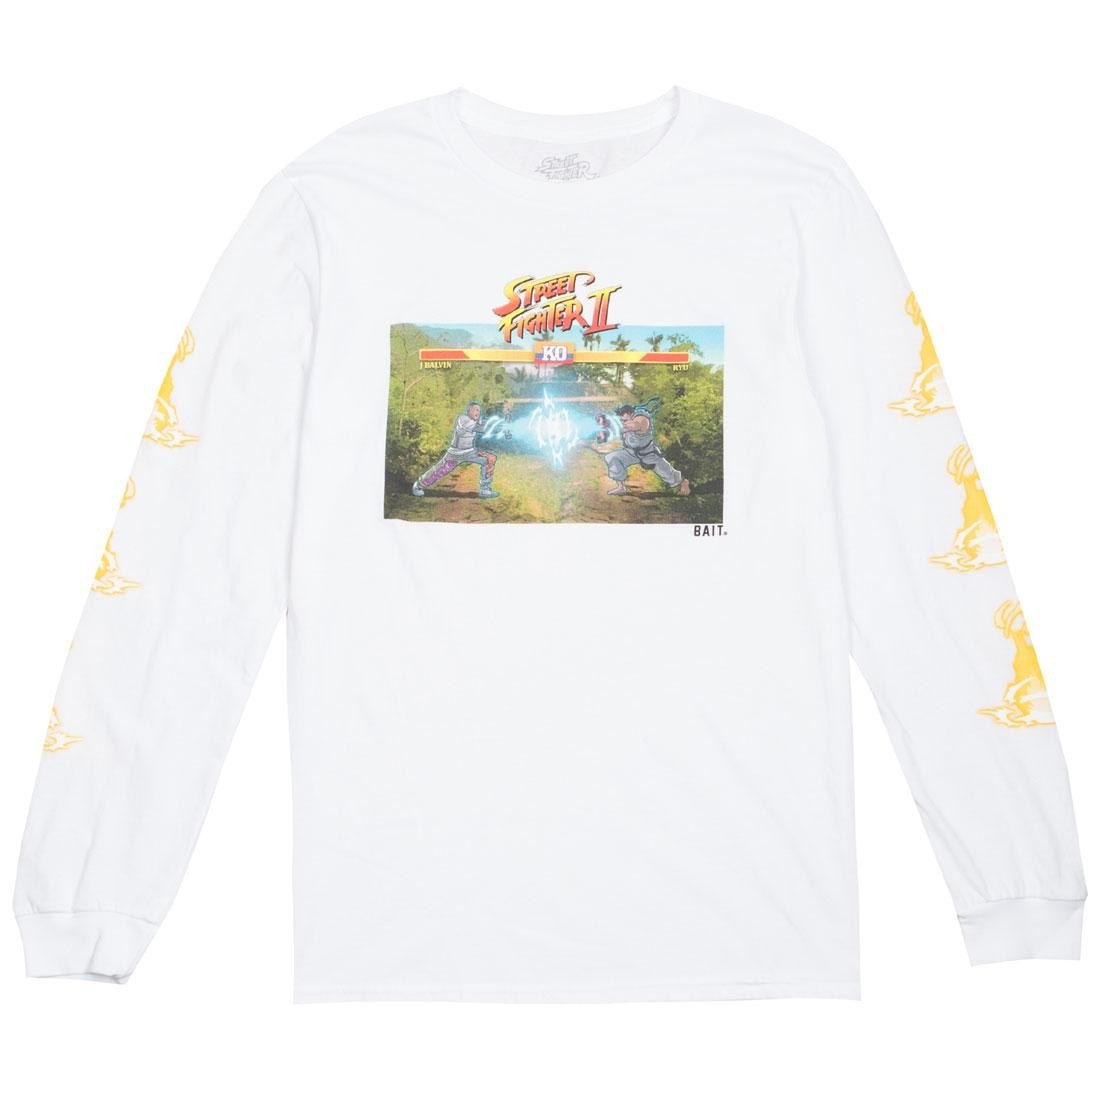 BAIT x Street Fighter x JBALVIN Men Hadouken Long Sleeve Tee (white)